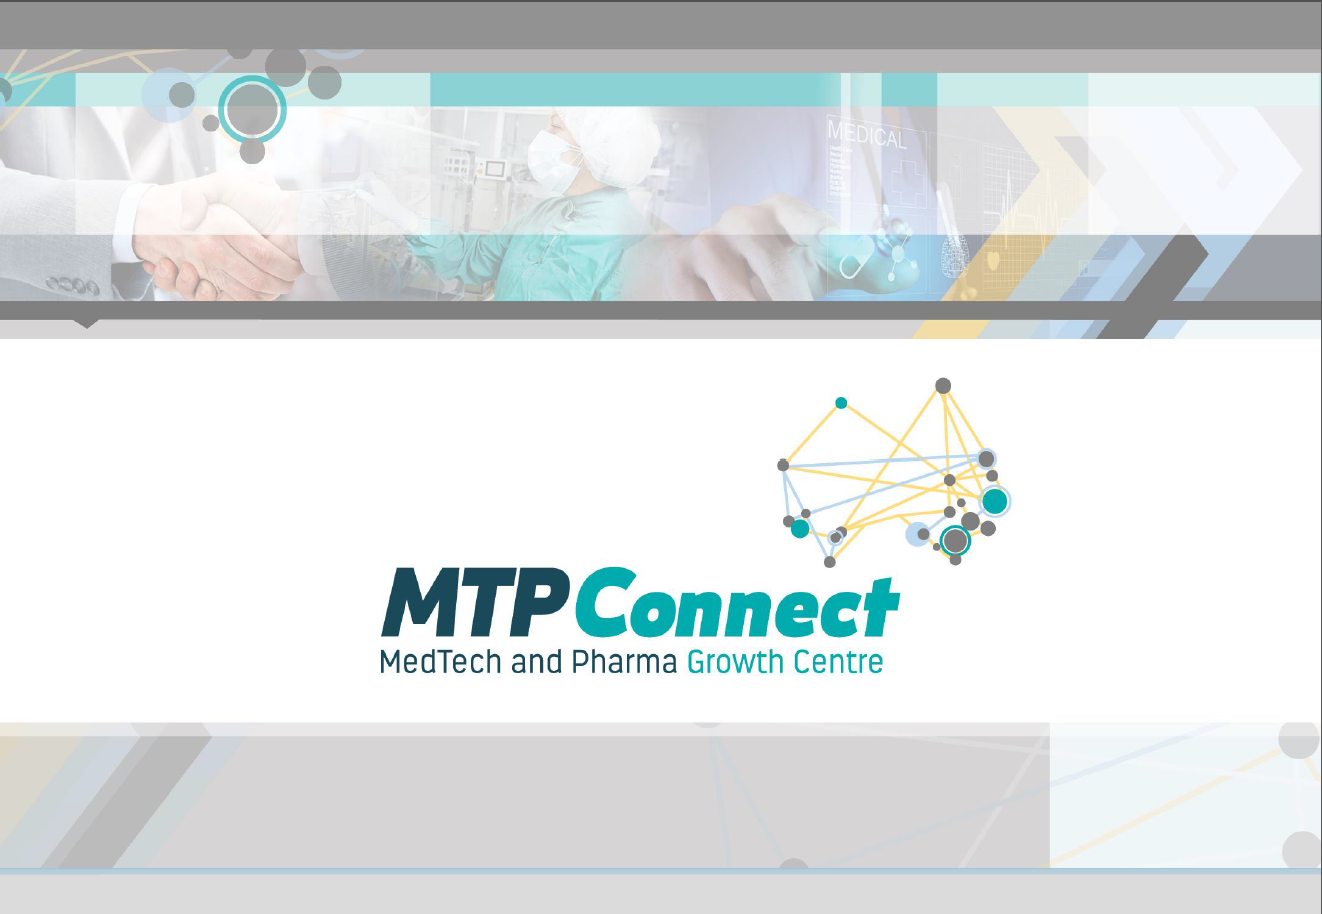 MTPConnect - A Novel Model For Translation of Medtech & Pharmaceutical Technologies